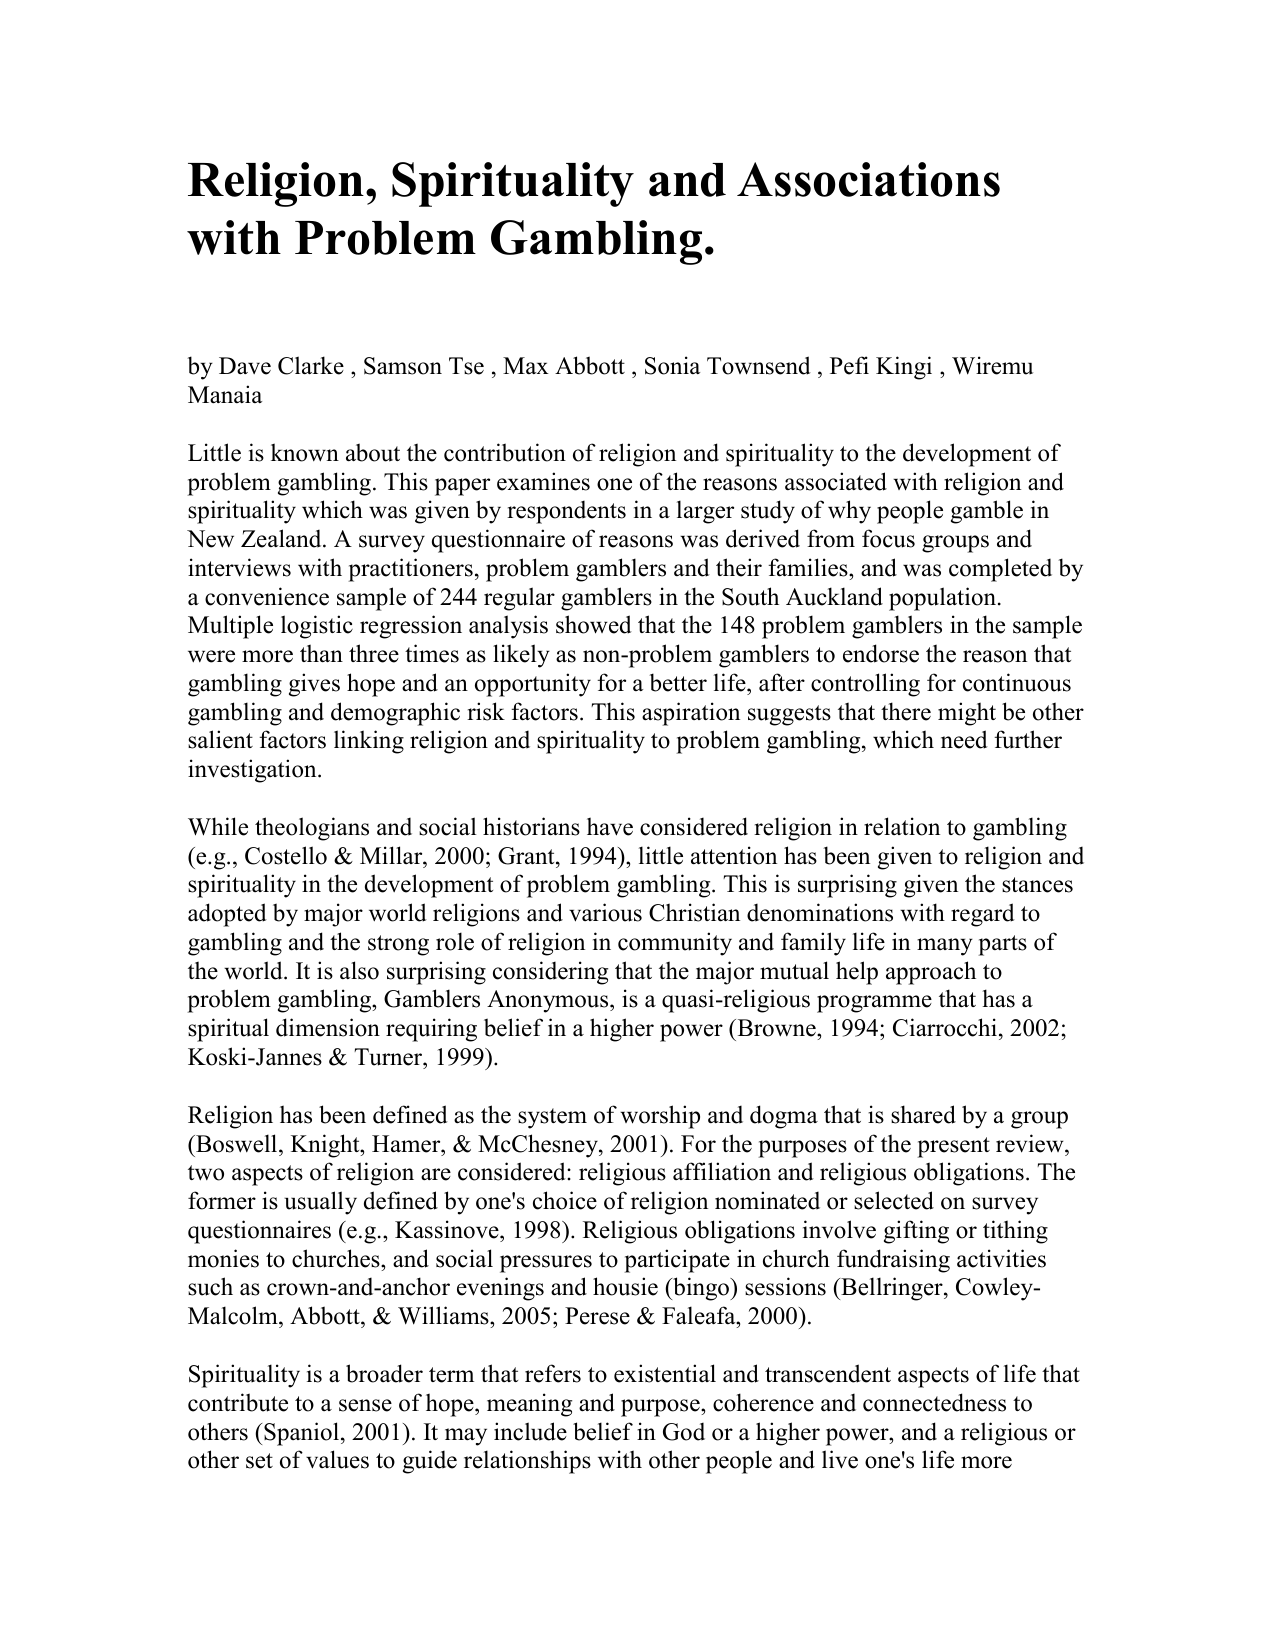 Religion spirituality and associations with problem gambling does cabo san lucas have gambling